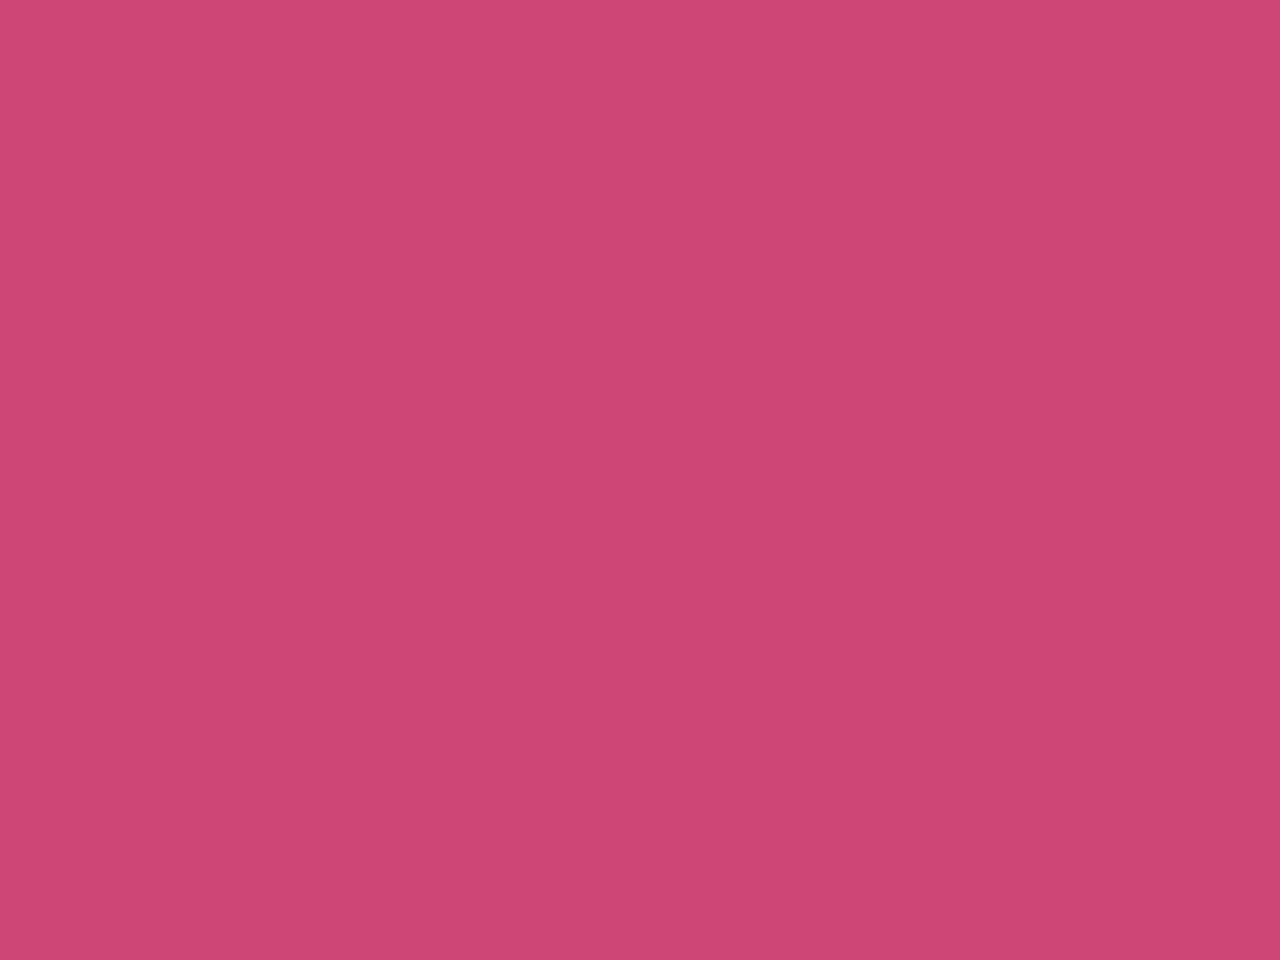 1280x960 Ruber Solid Color Background